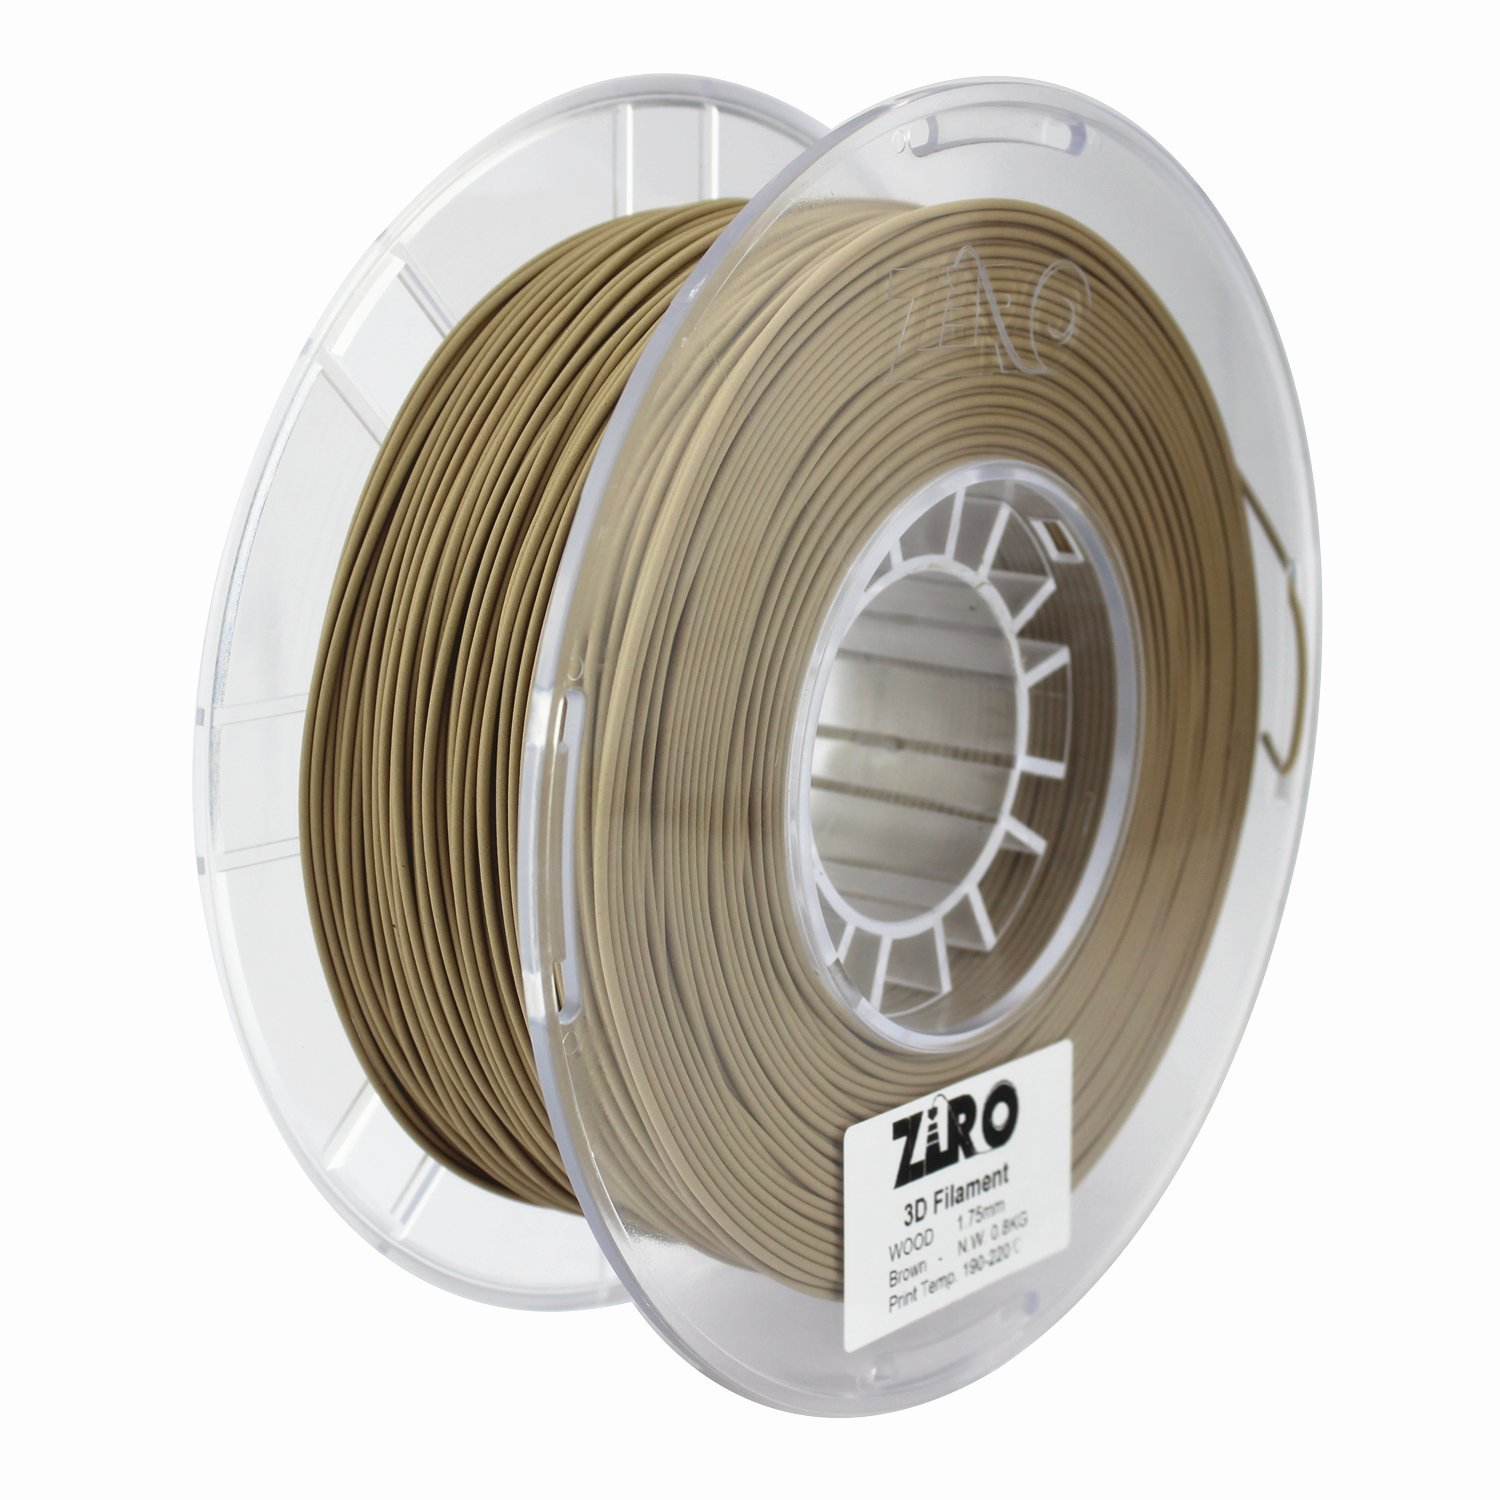 ZIRO 3D Printer Filament 1.75mm WOOD 3D Filament 0.8KG Spool, Dimensional Accuracy +/- 0.05mm, Brown